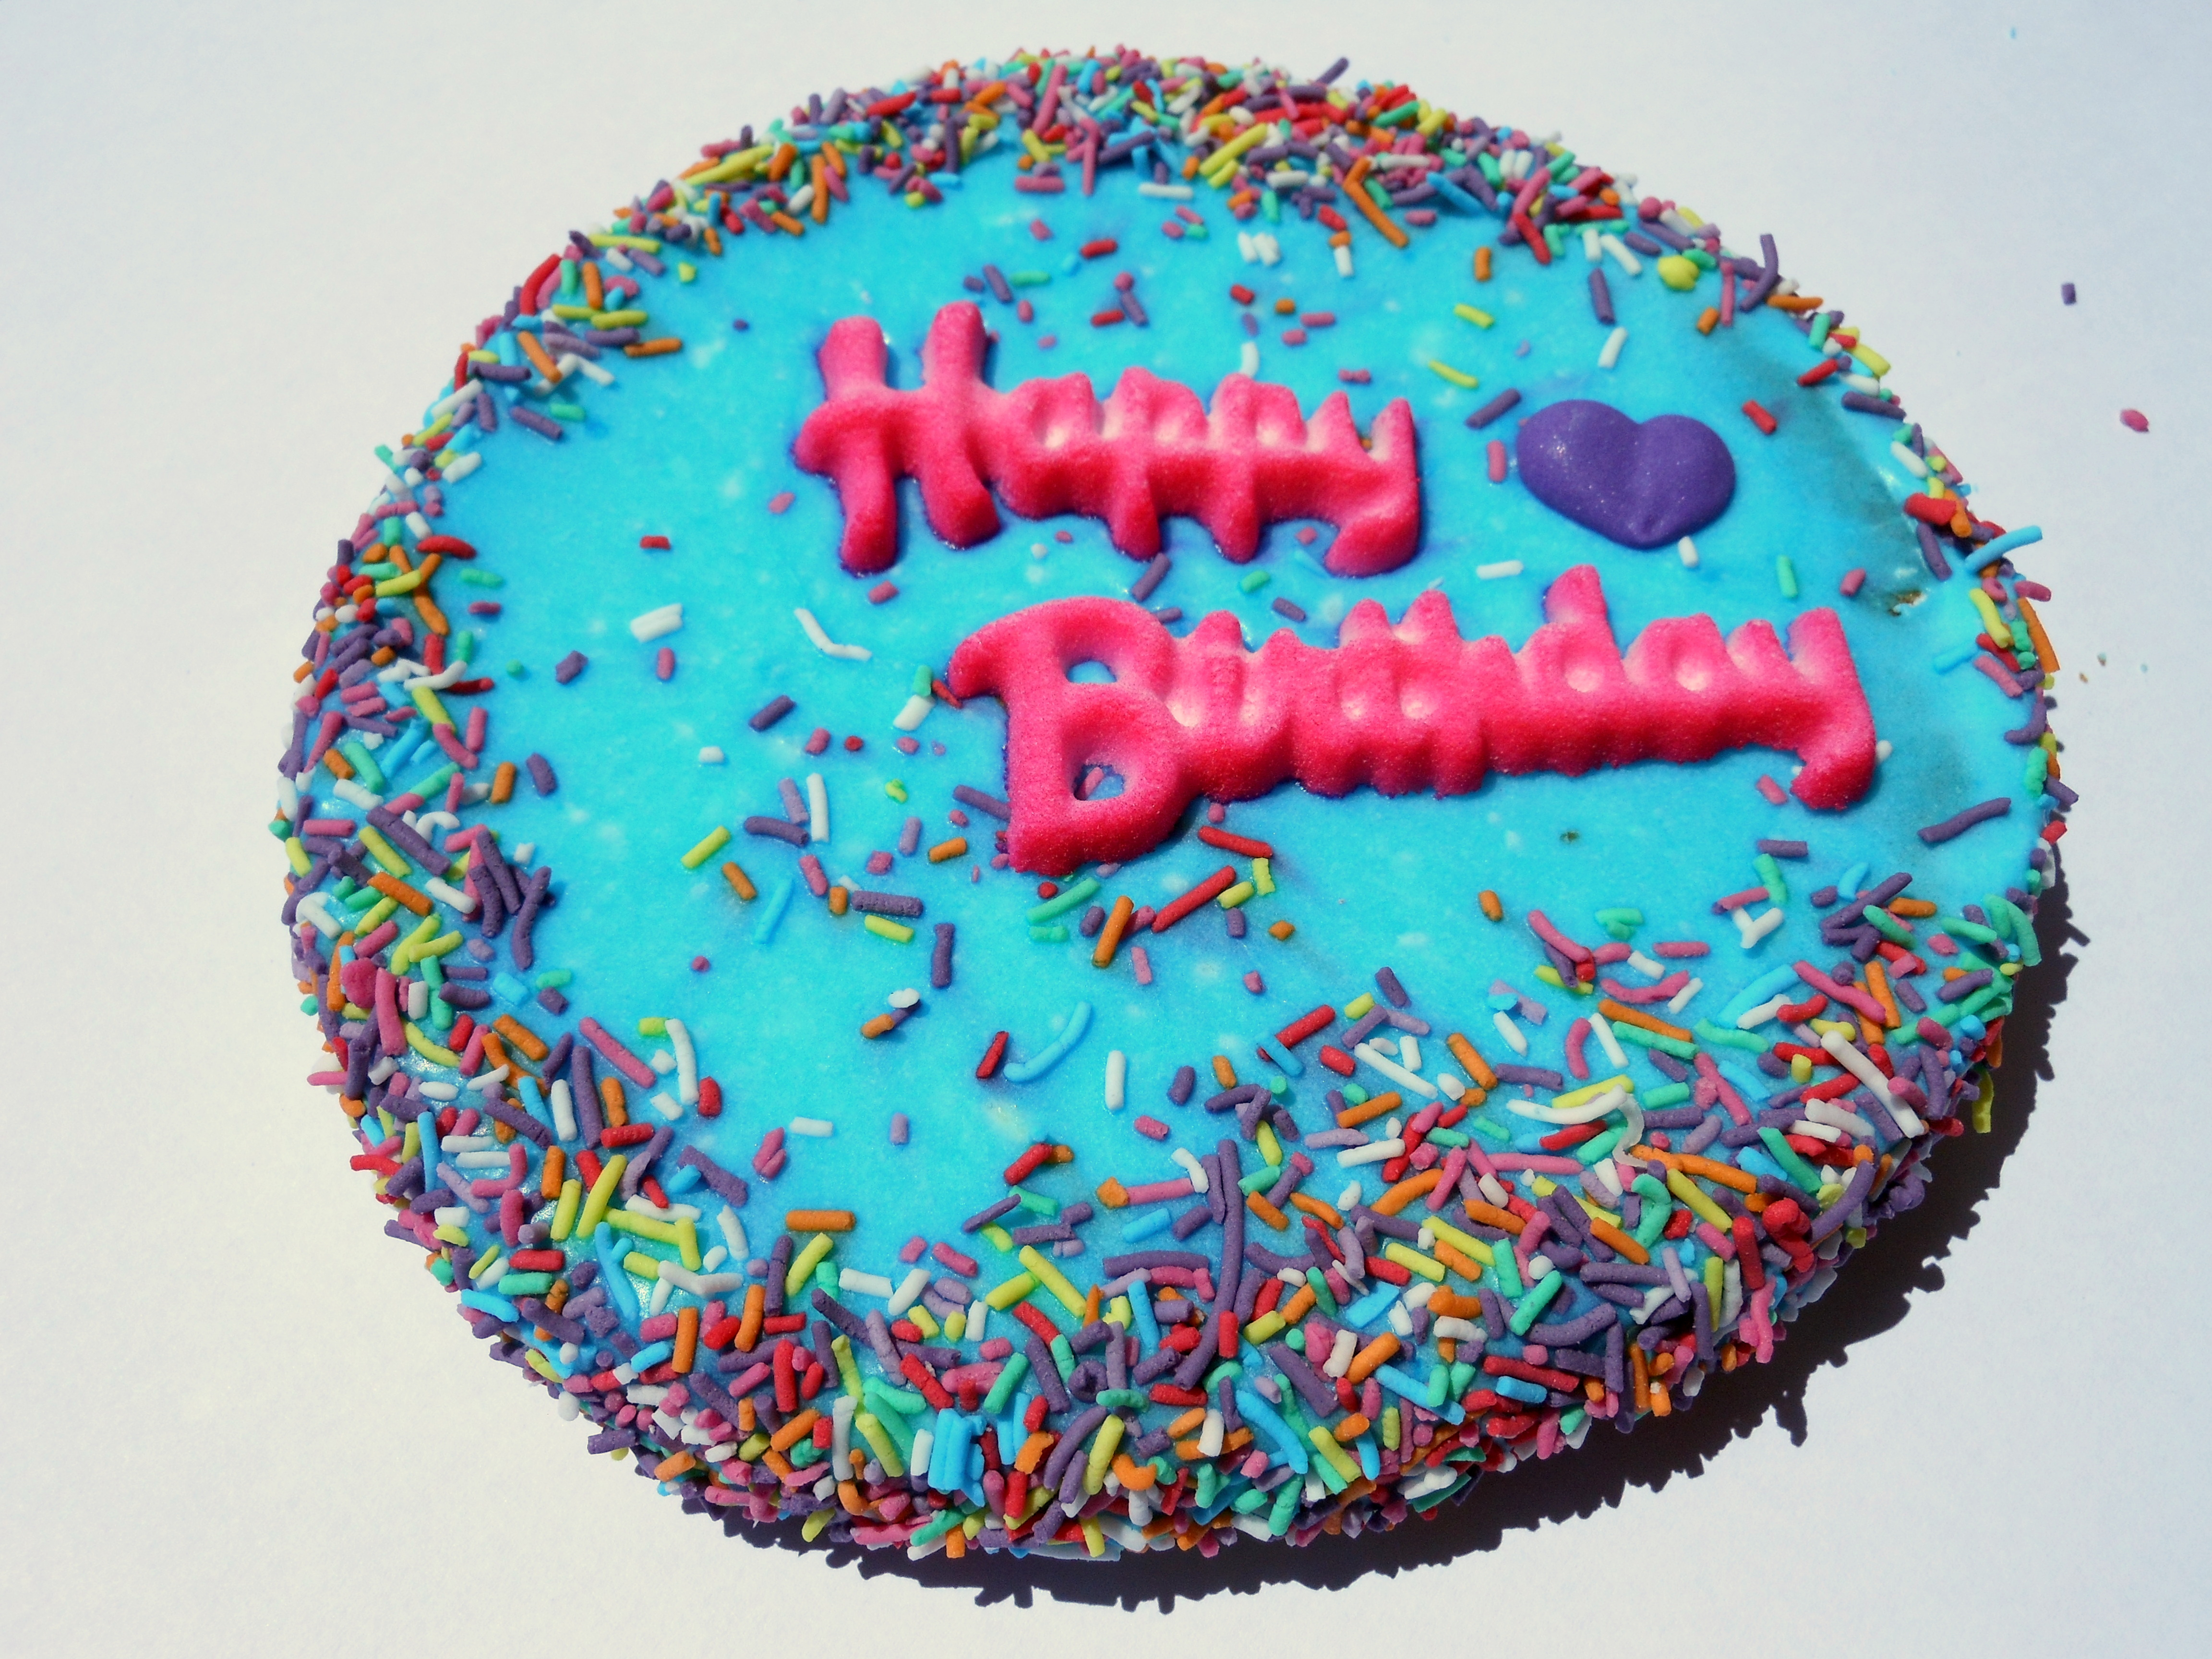 Yeeha-Birthday-Cake-Horse-Treats-Blue-and-Pink